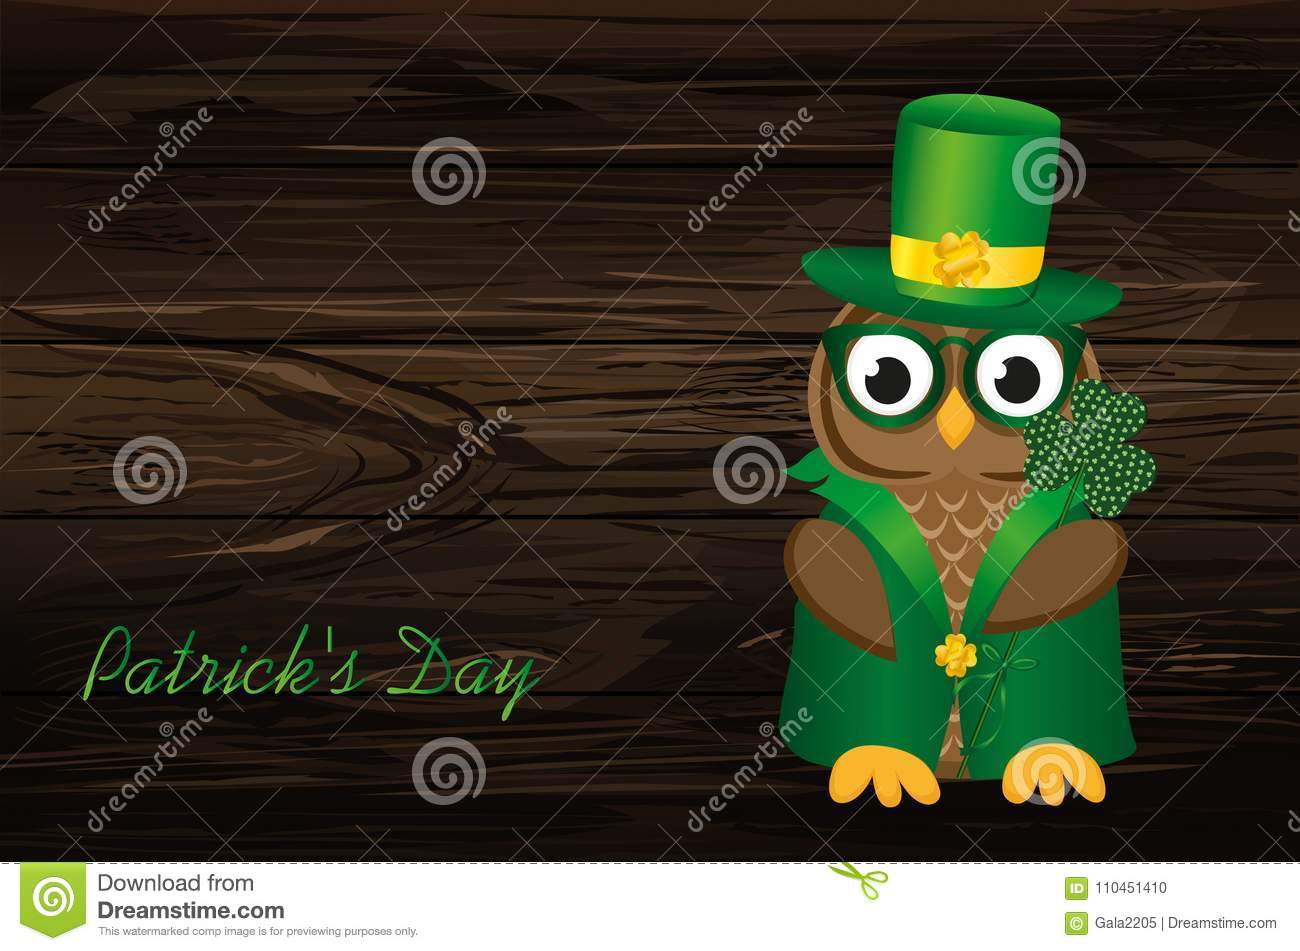 Owl In Traditional Green Suit And Glasses On The Day Of Patrick